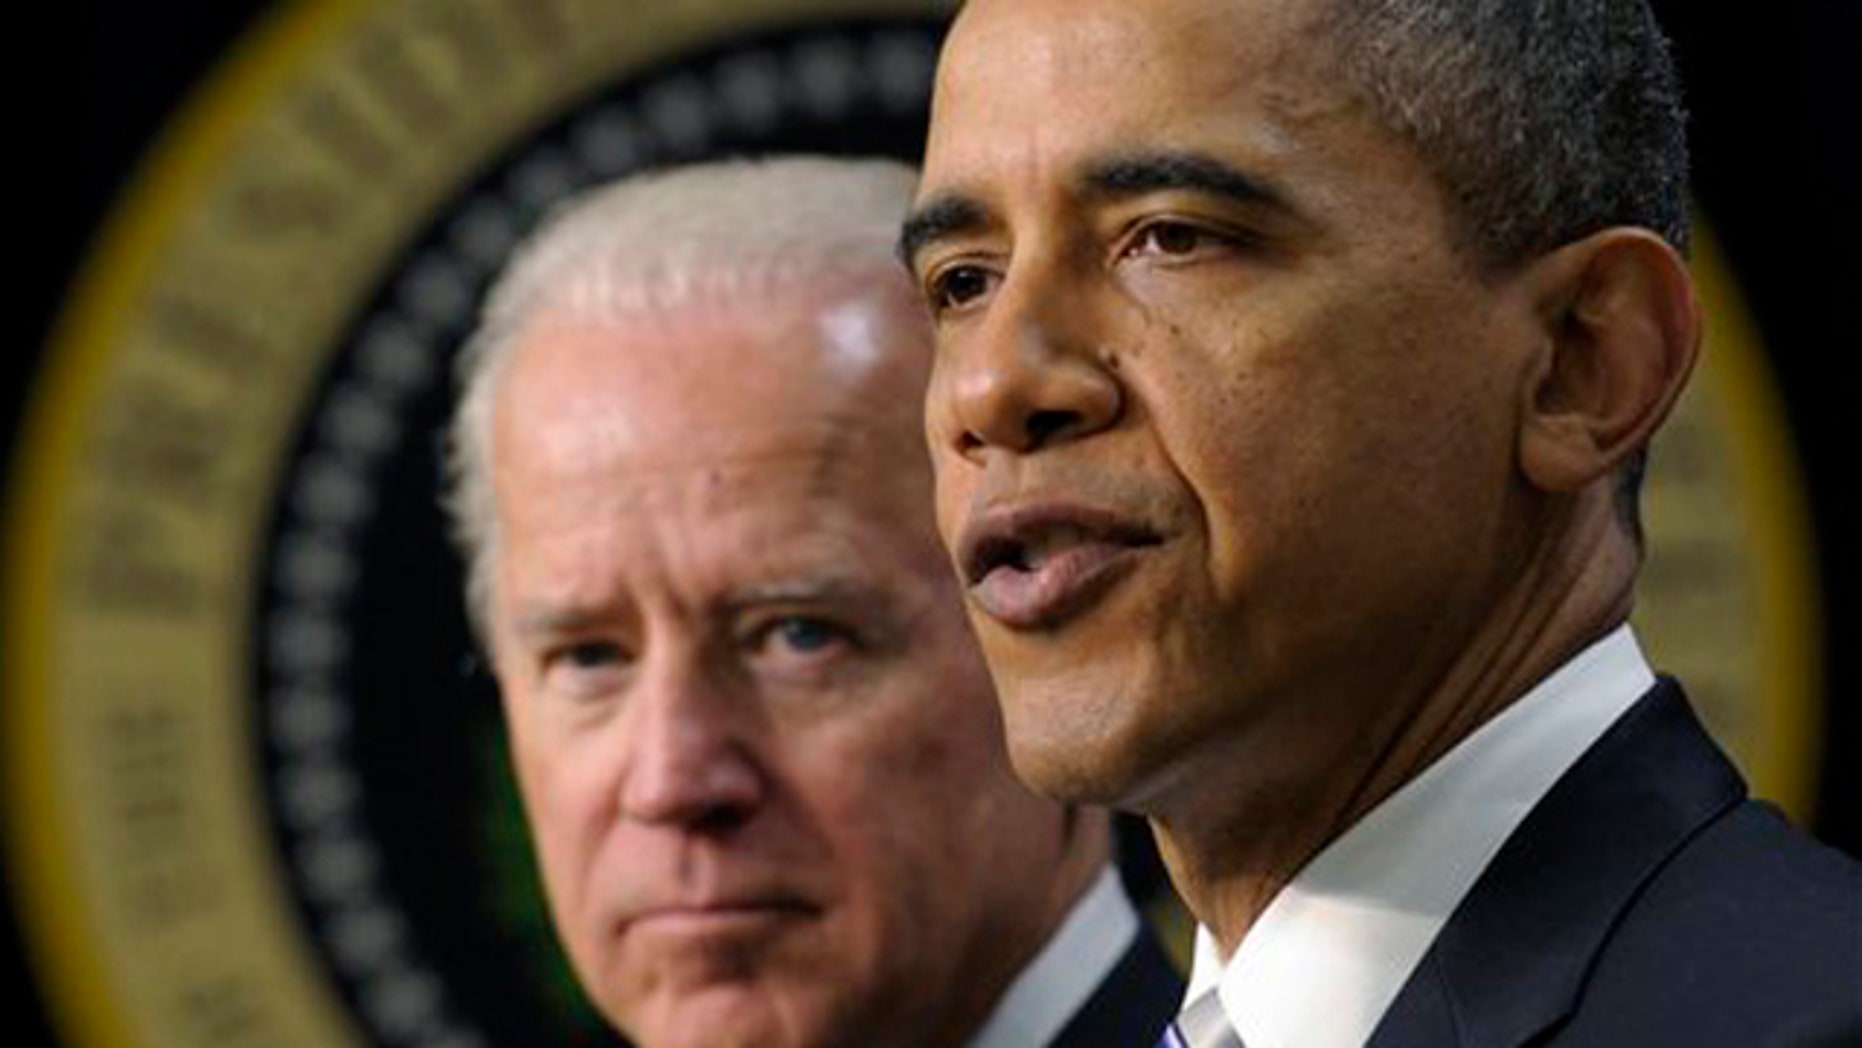 FILE - In a Feb. 21, 2012 file photo President Barack Obama, accompanied by Vice President Joe Biden, speaks in the Eisenhower Executive Office Building on the White House complex in Washington.  A previously undisclosed Biden memo to Obama in November 2009 reflects his view that military commanders were asking Obama to take a leap by adding tens of thousands of forces in Afghanistan whose role was poorly defined.   (AP Photo/Susan Walsh/file)